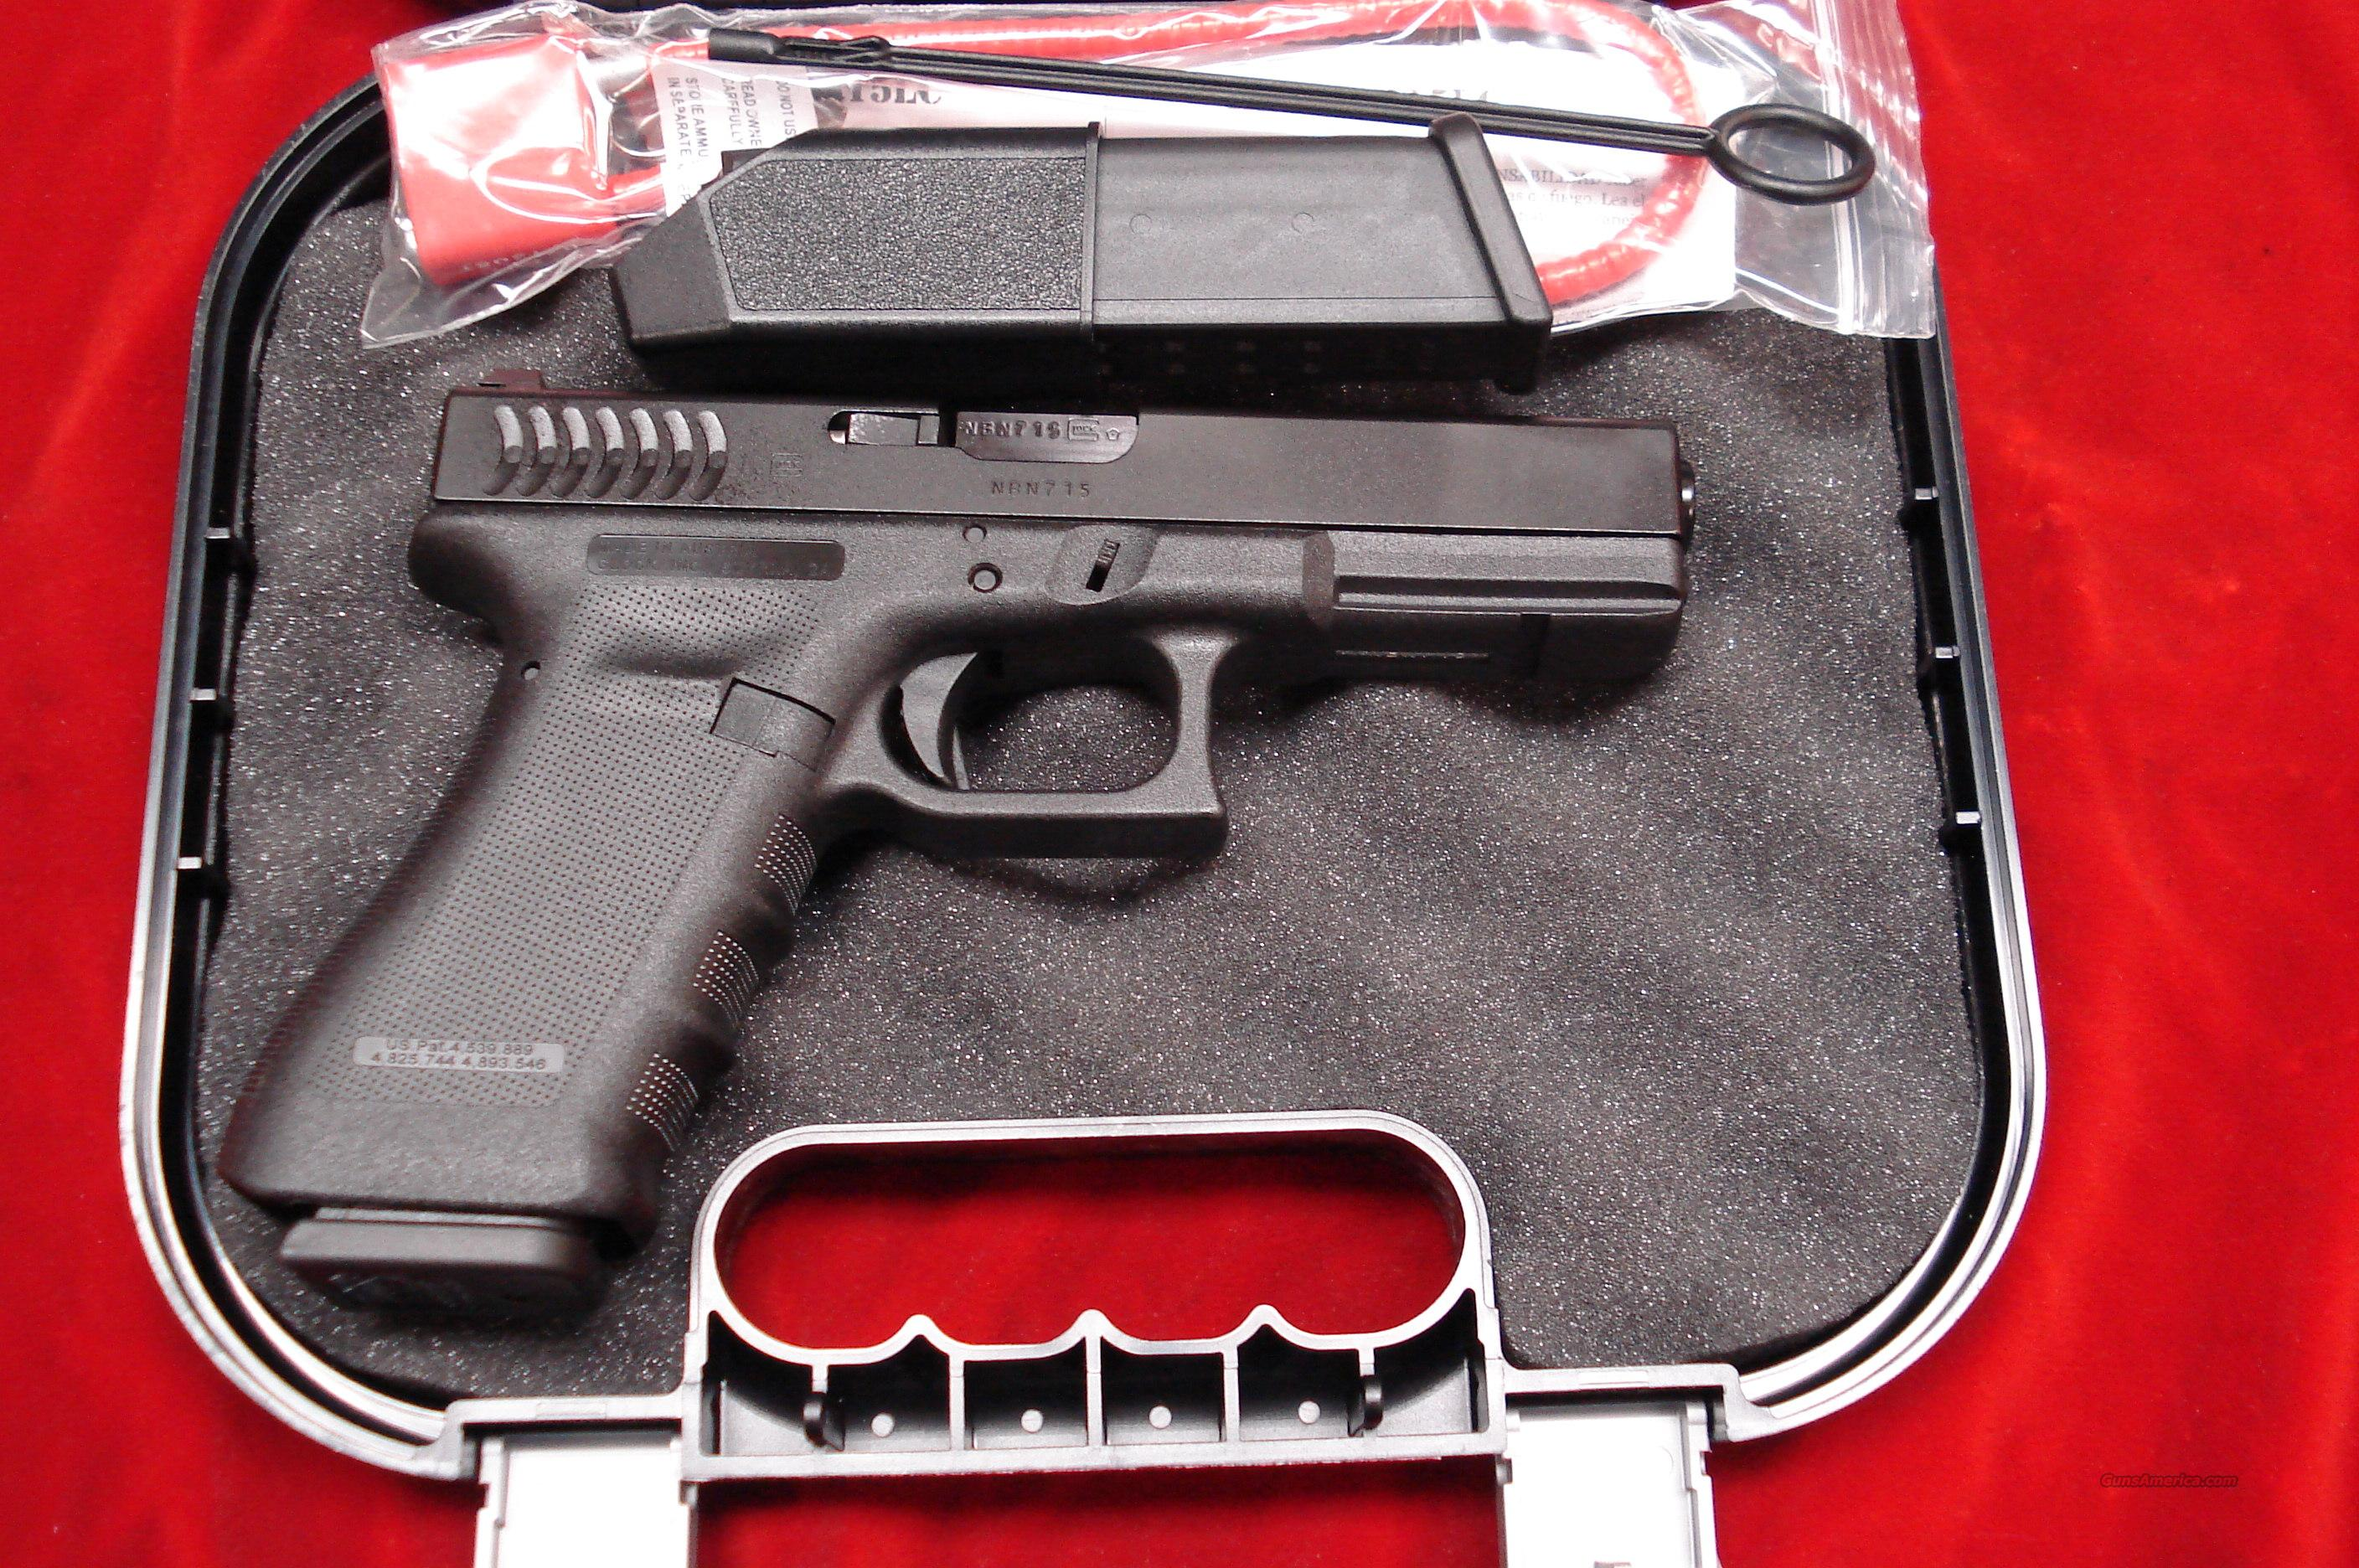 GLOCK NEW  MODEL 22 RTF2 (ROUGH TEXTURE FRAME) W/NIGHT SIGHTS AND HIGH CAPACITY MAGS NEW   Guns > Pistols > Glock Pistols > 22